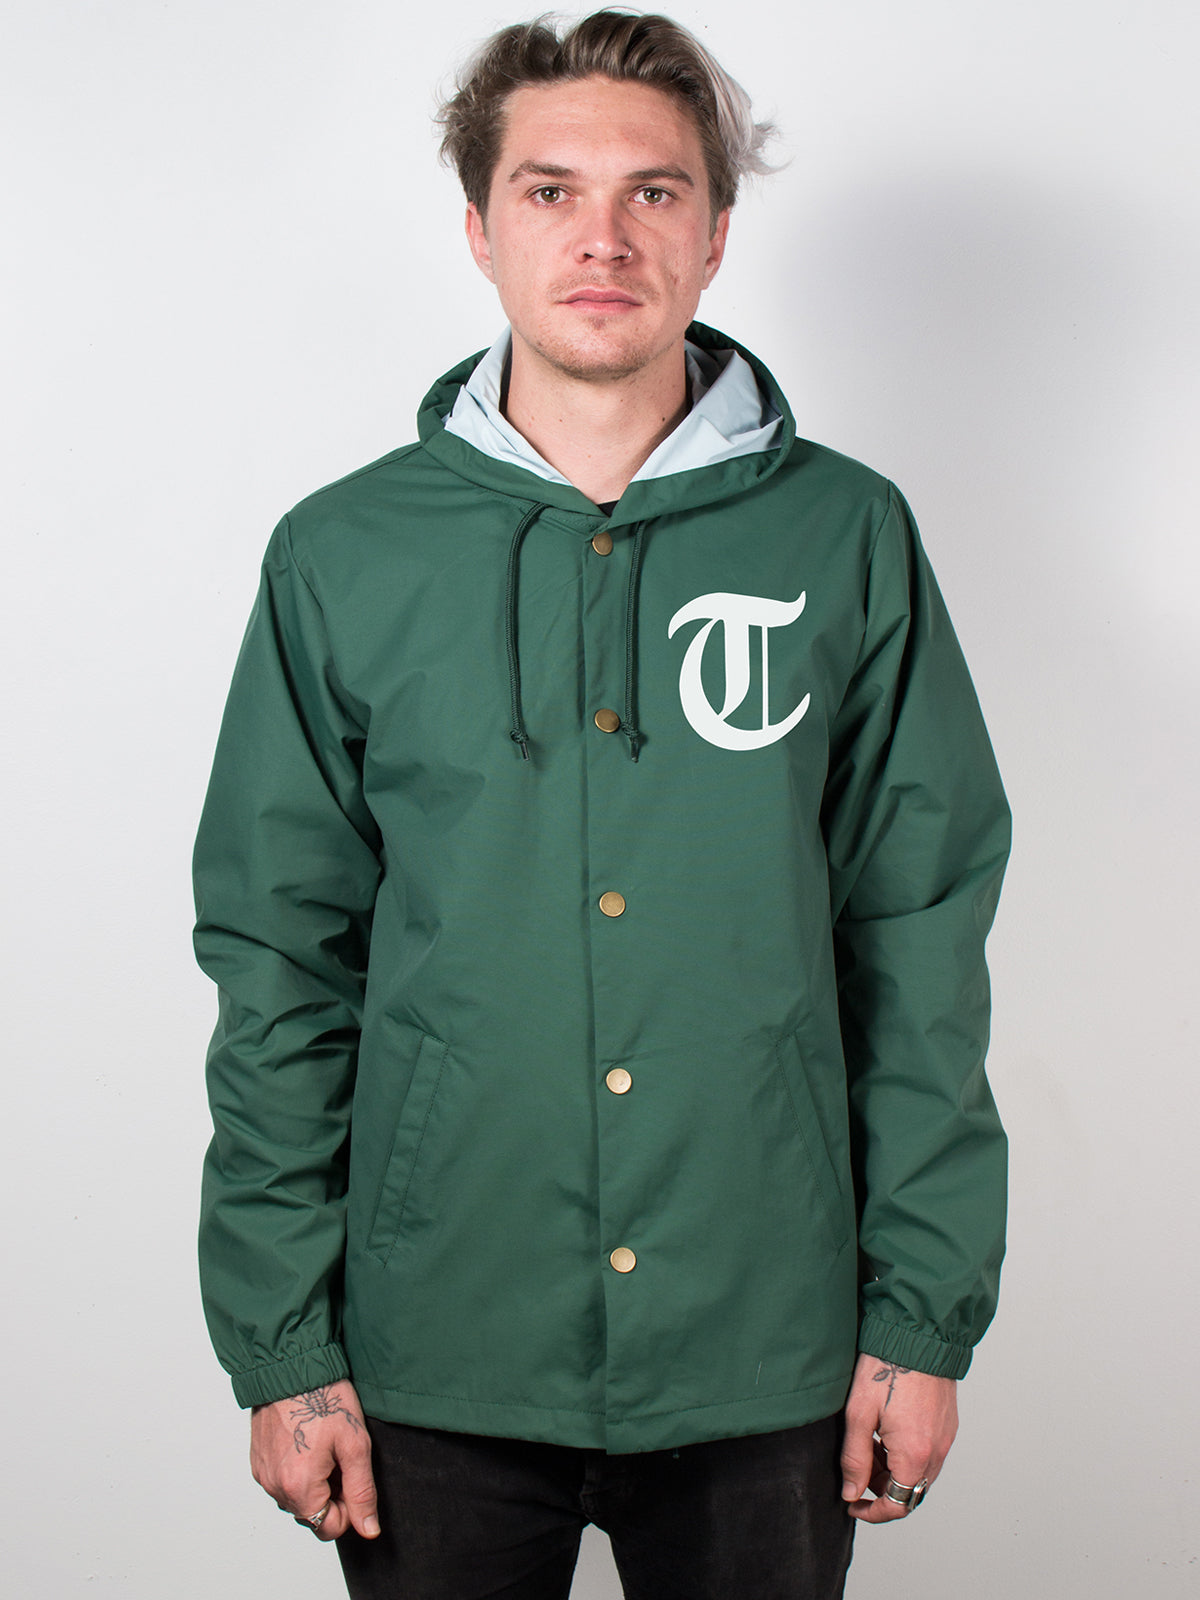 Terror - KOTF All Weather Jacket